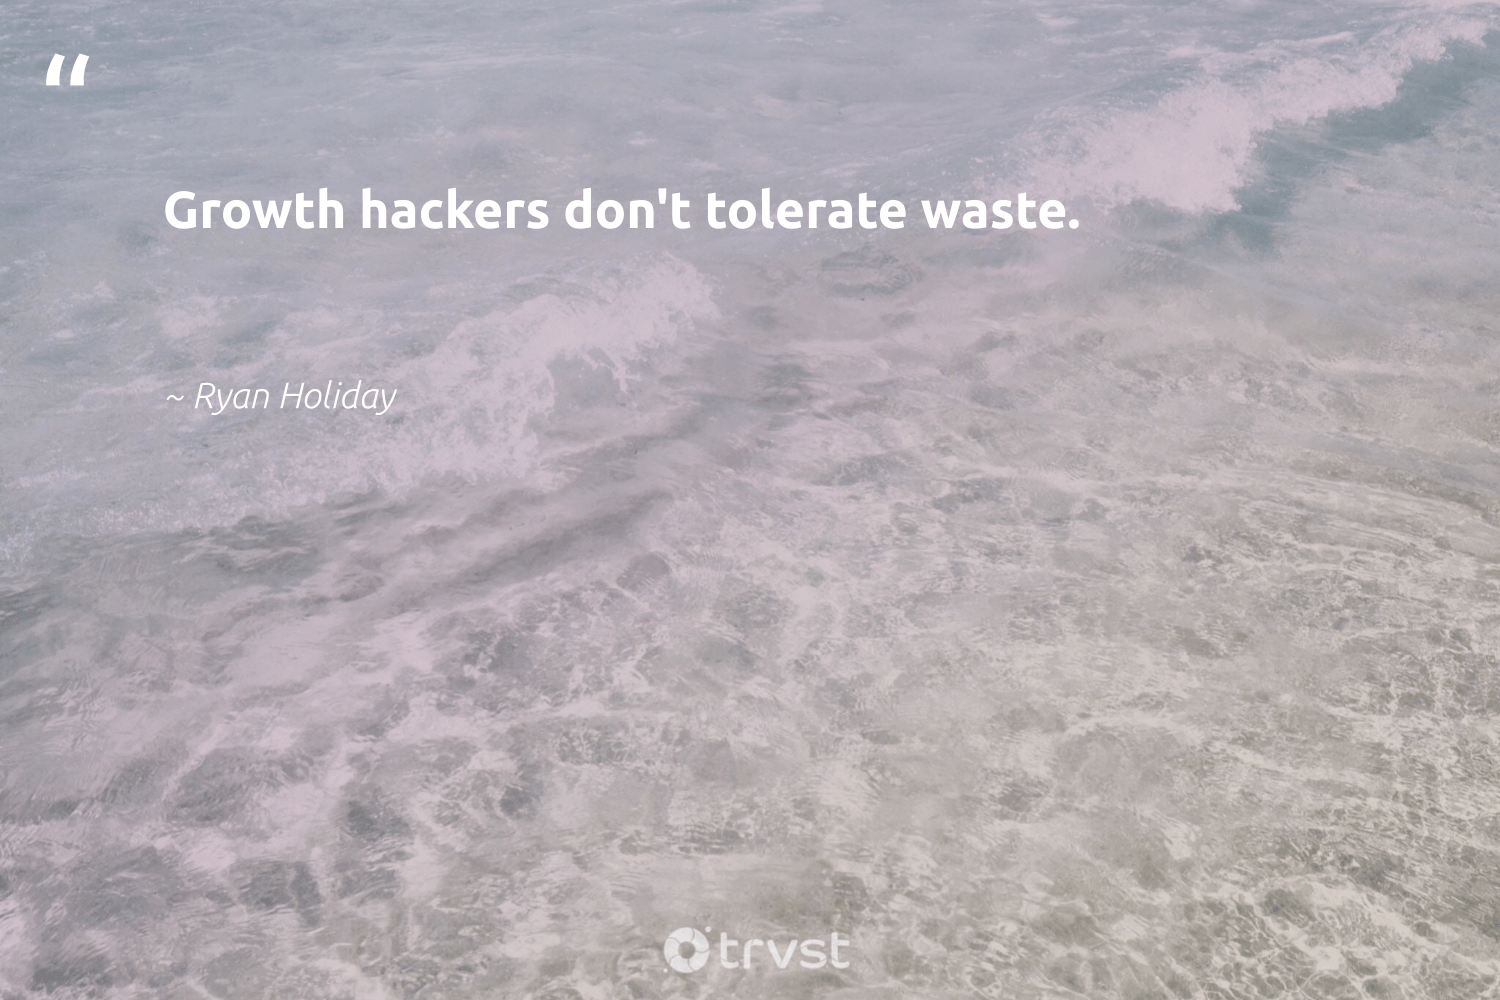 """Growth hackers don't tolerate waste.""  - Ryan Holiday #trvst #quotes #waste #begreat #dosomething #nevergiveup #collectiveaction #softskills #socialchange #futureofwork #thinkgreen #socialimpact"